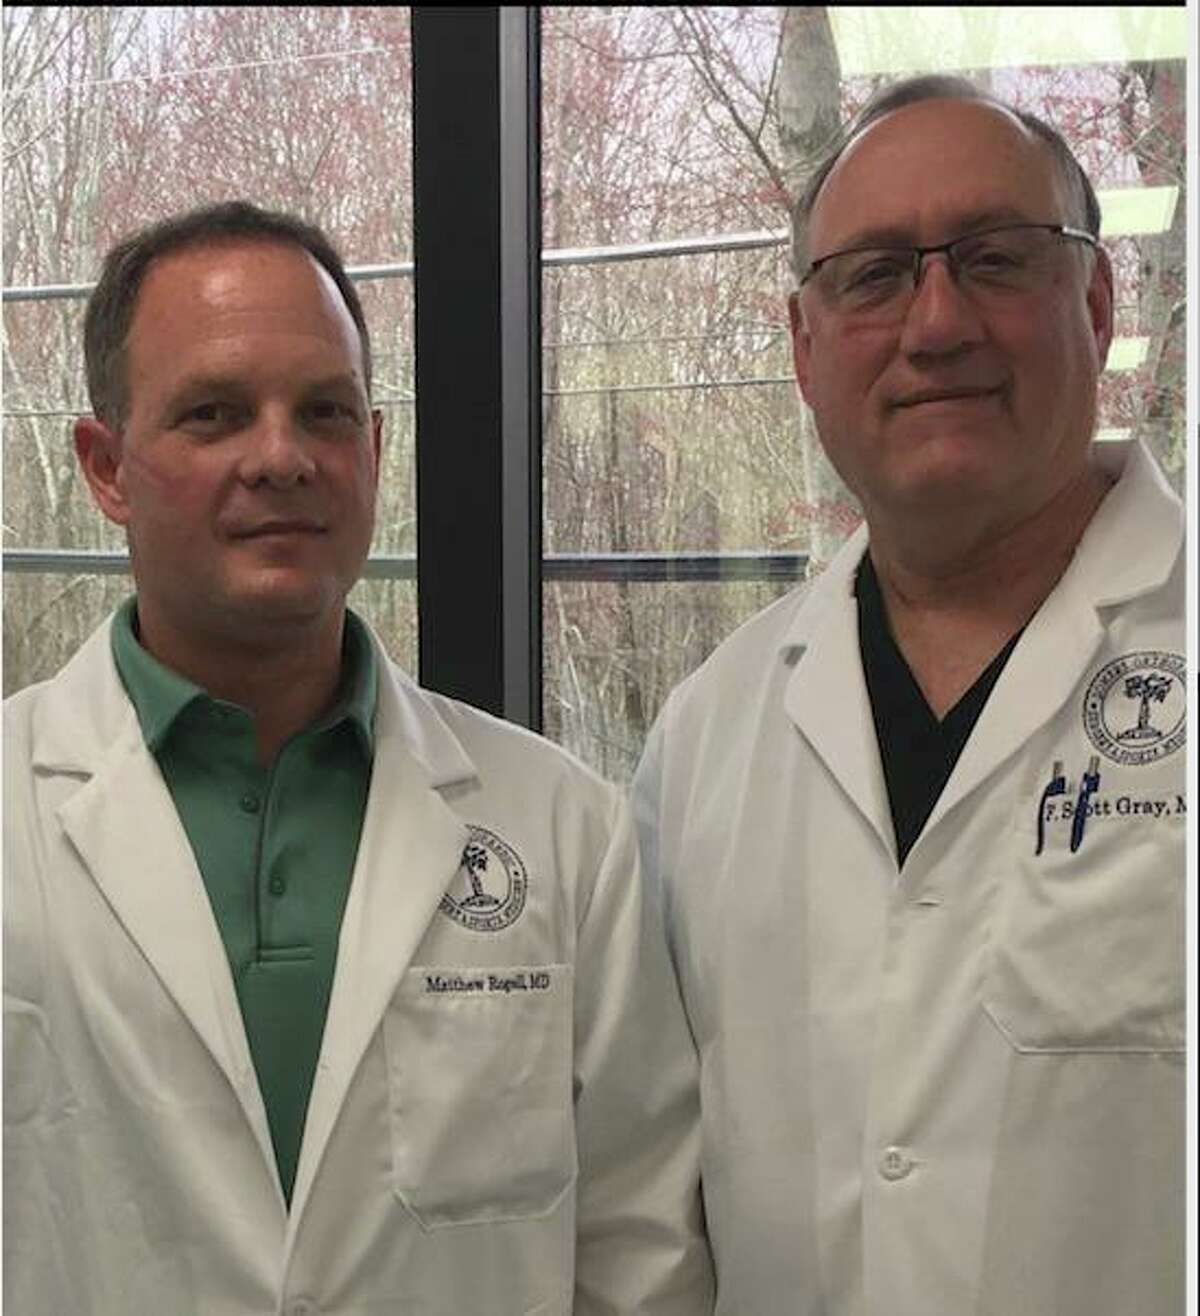 Dr. F. Scott Gray and Dr. Matthew Rogell